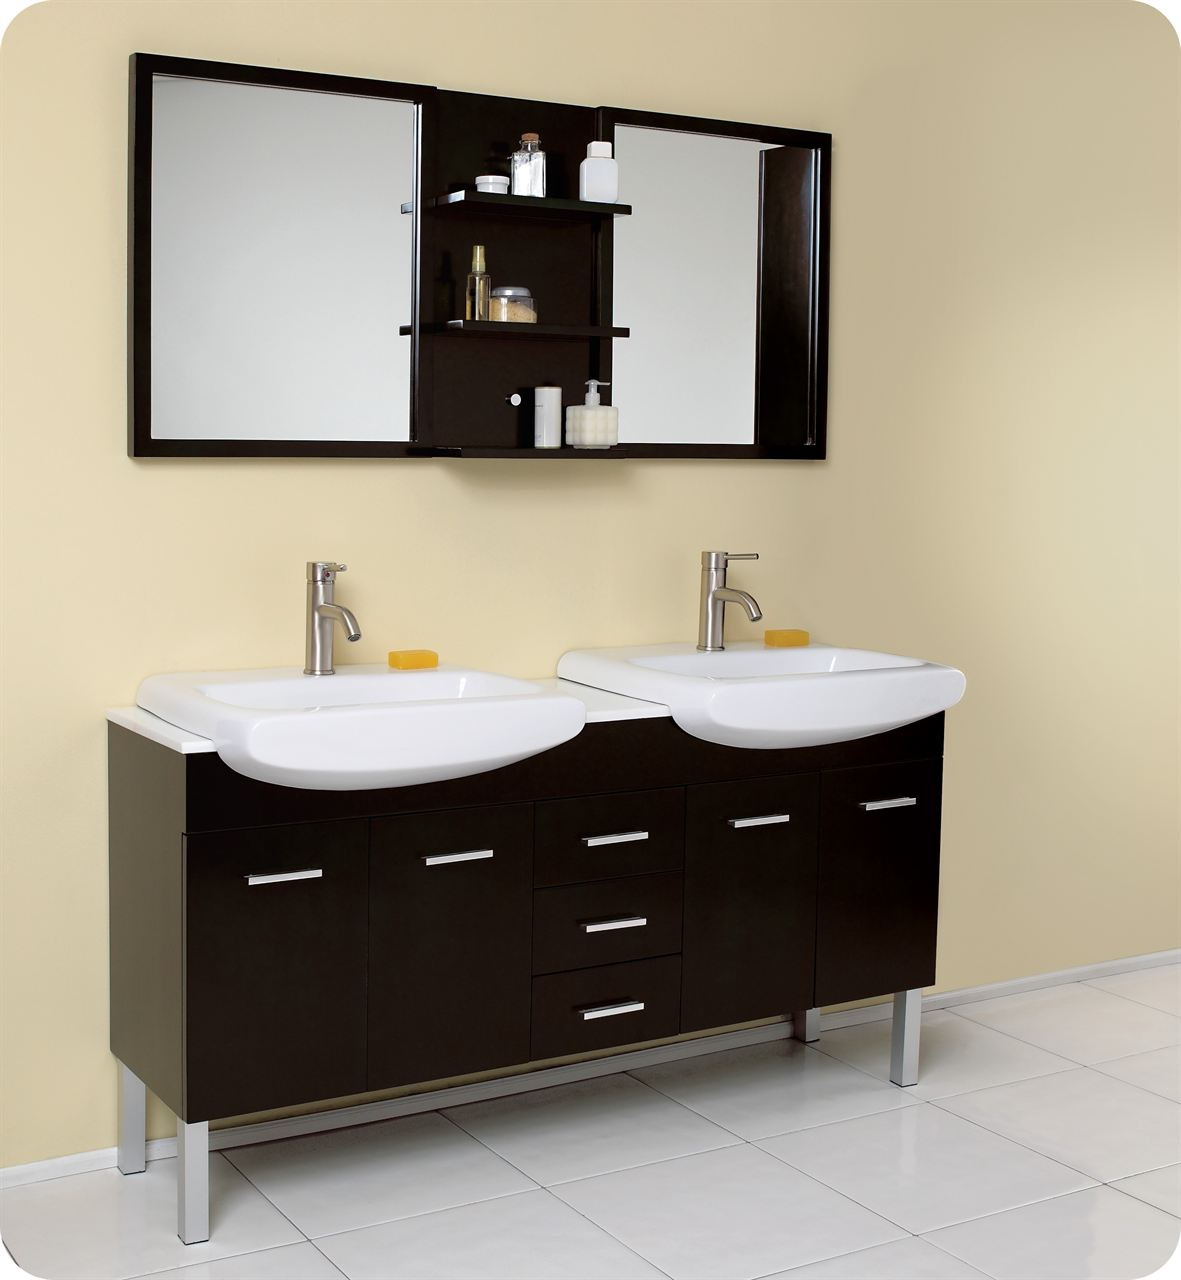 Modern Small Double Sink Vanity With Mirror And Espresso Design